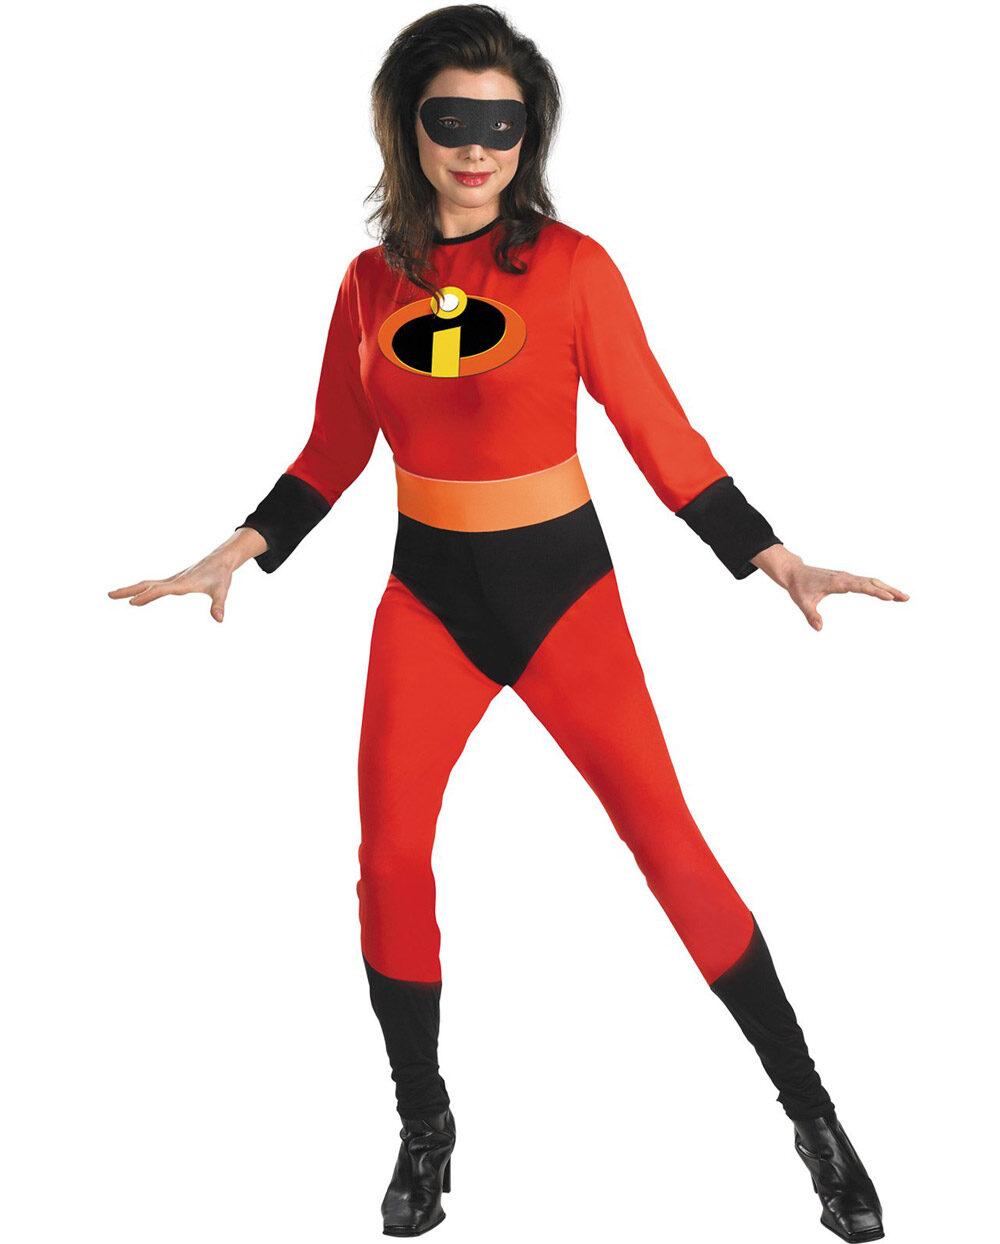 Mrs Incredible Adult Disney Costume  sc 1 st  Mr. Costumes & Mrs Incredible Adult Disney Costume - Mr. Costumes